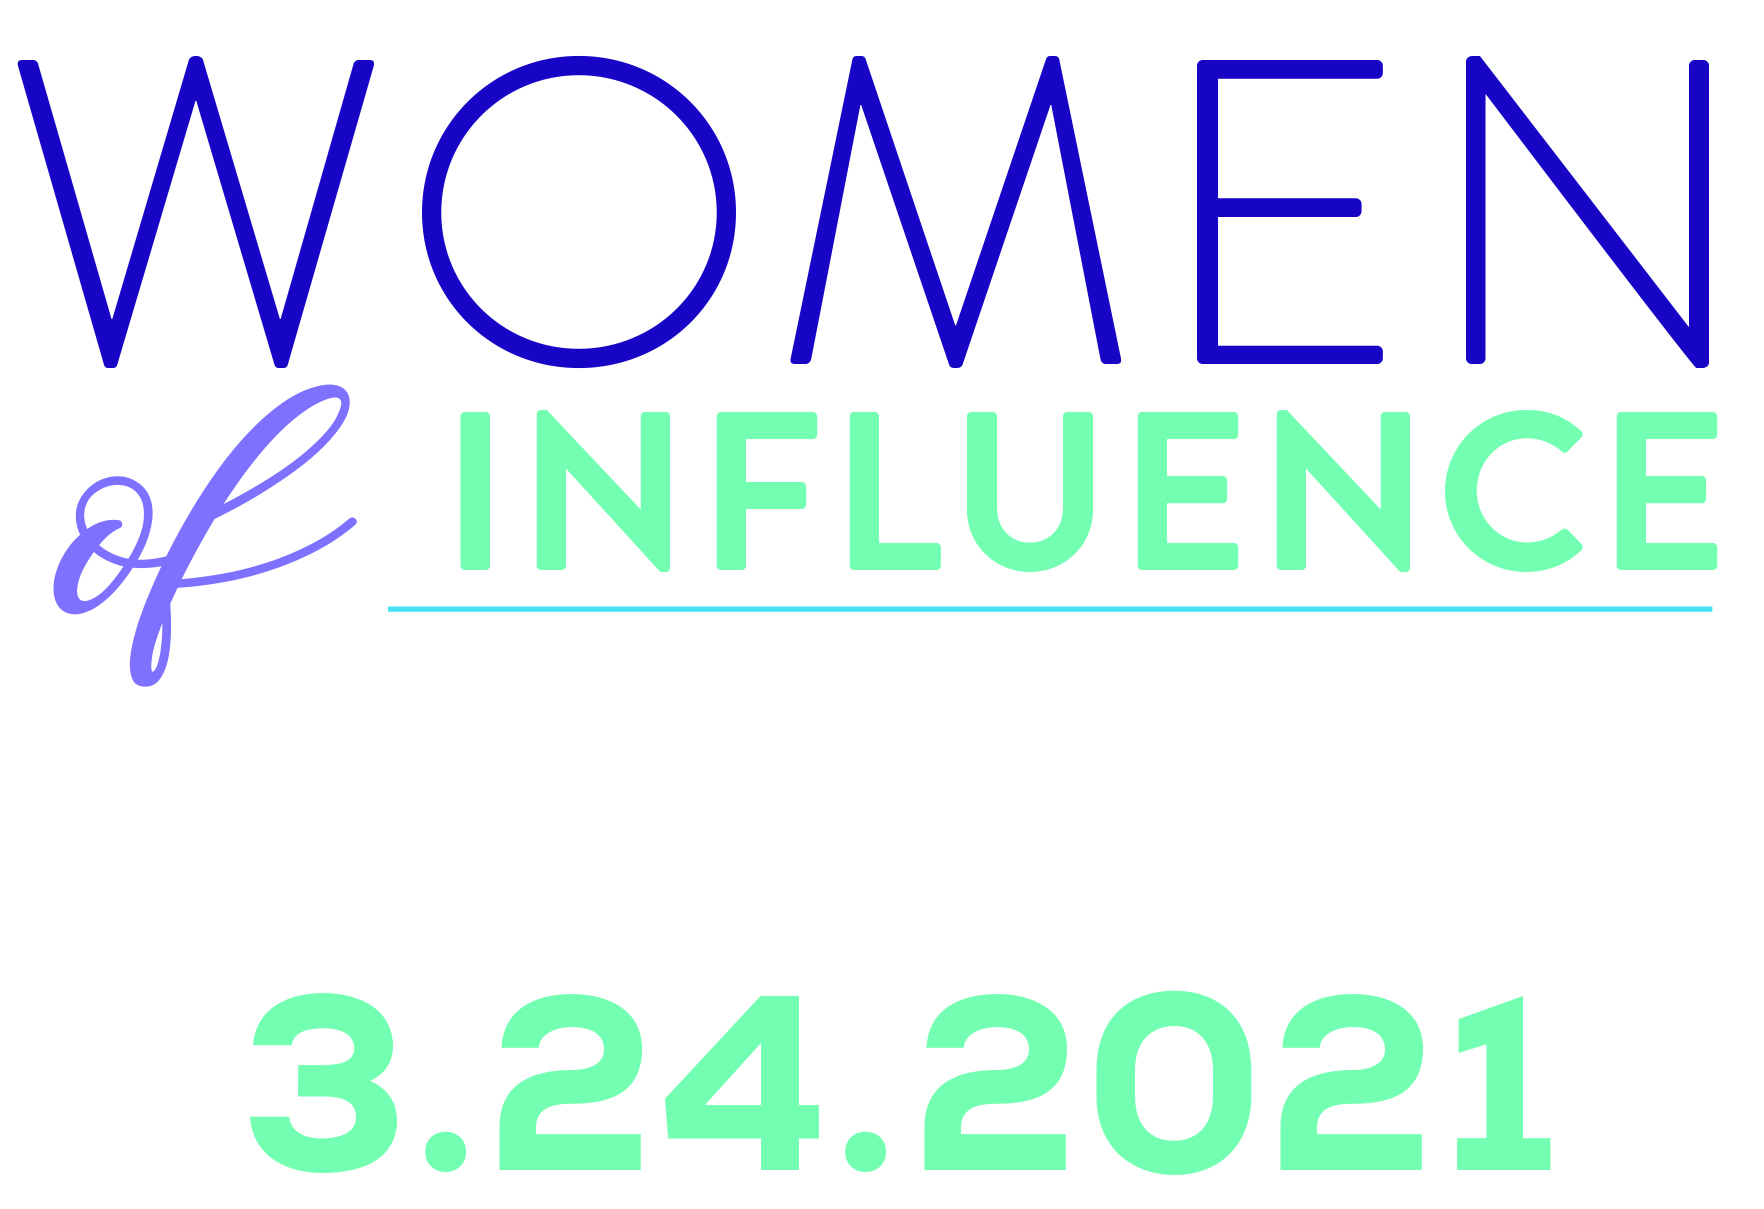 Women of Influence March 24, 2021